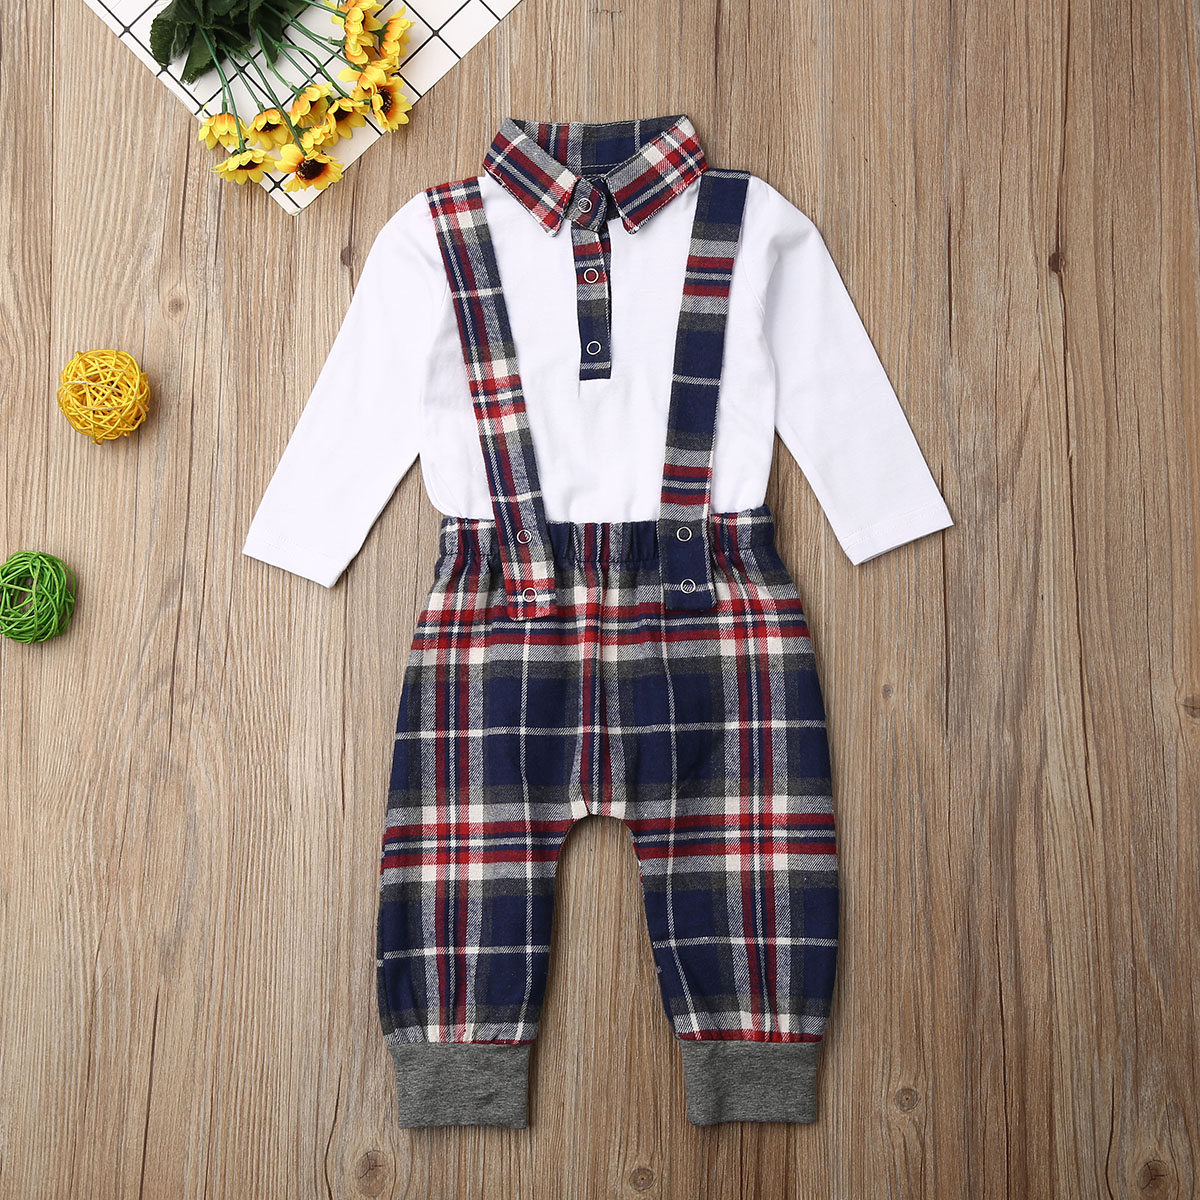 2020 NEW Little Gentle Newborn Baby Boy Clothing Set Round Neck Long Sleeve Shirt  Plaid Strap Trousers Clothes Set For Children